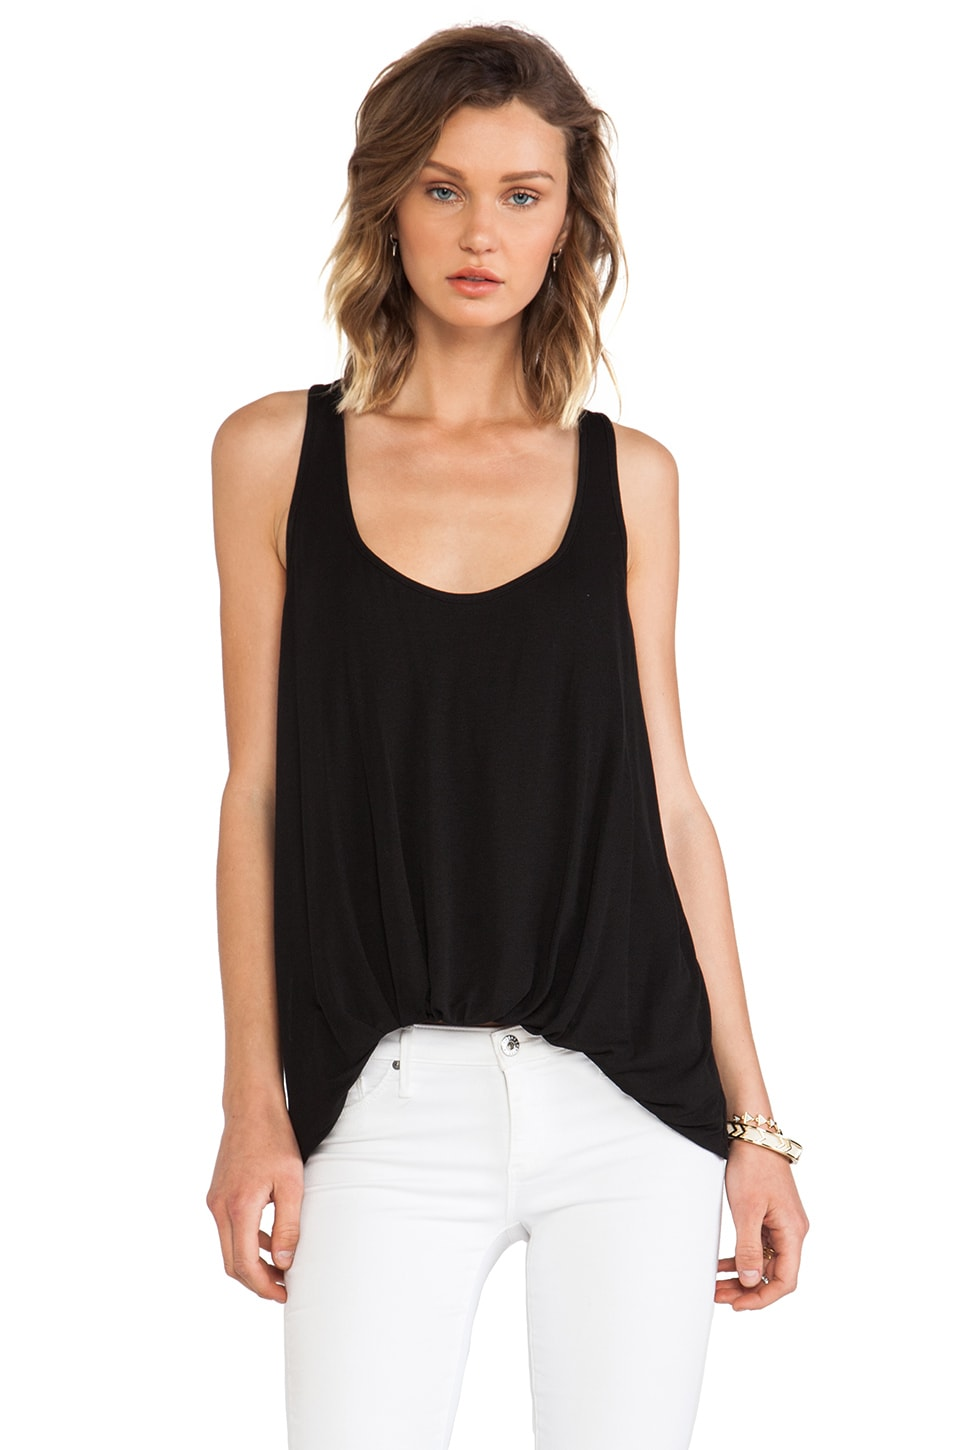 Elizabeth and James New Kim Top in Black